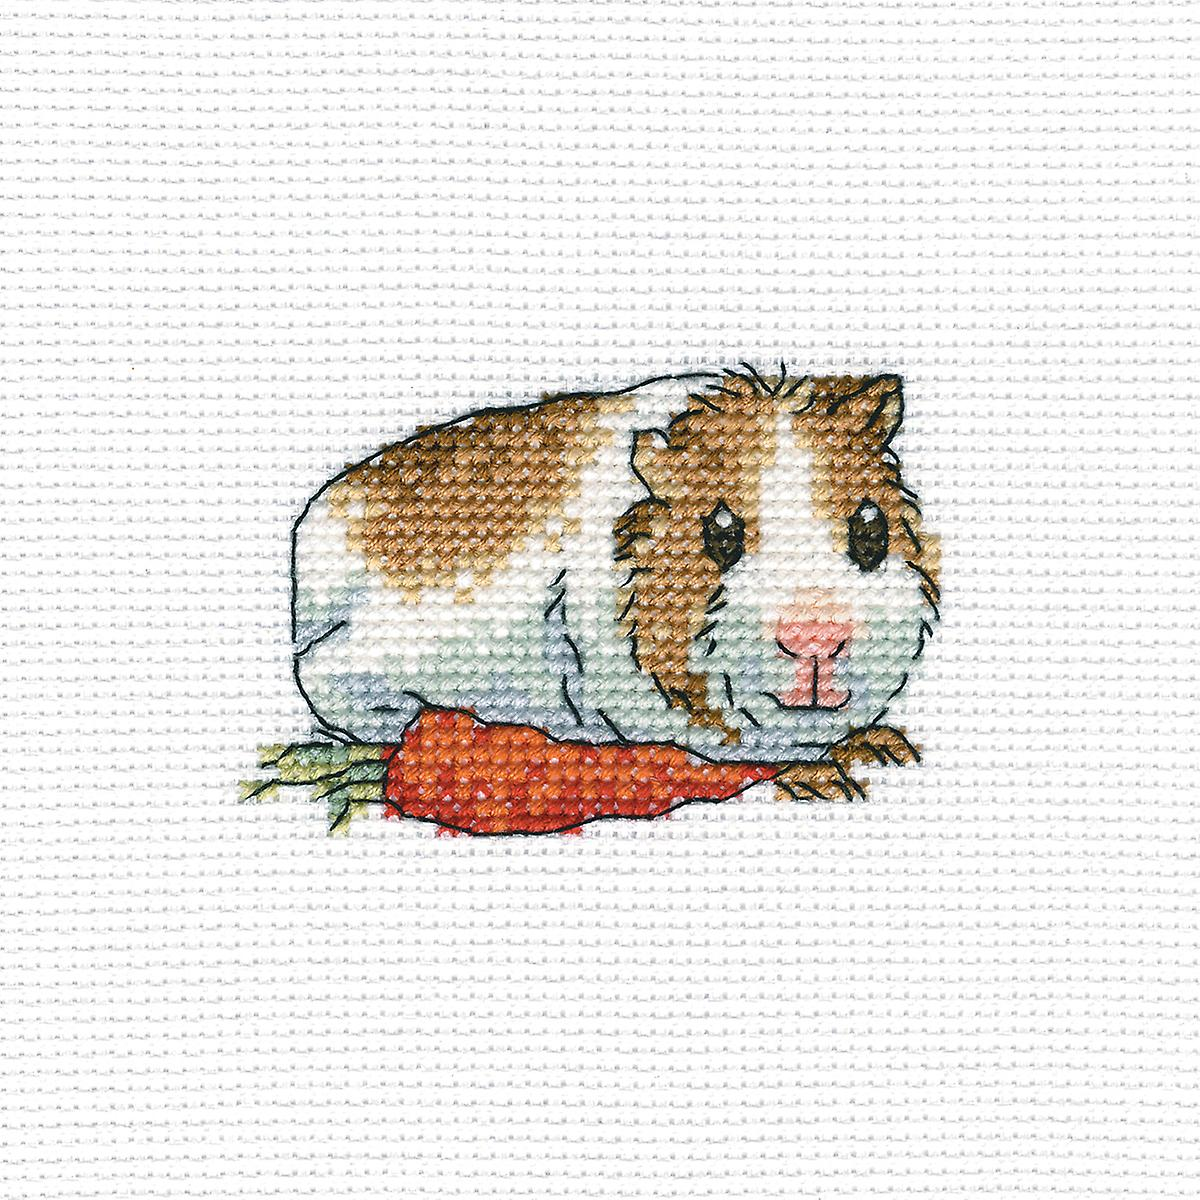 Cavy With Carrot Counted Cross Stitch Kit-4